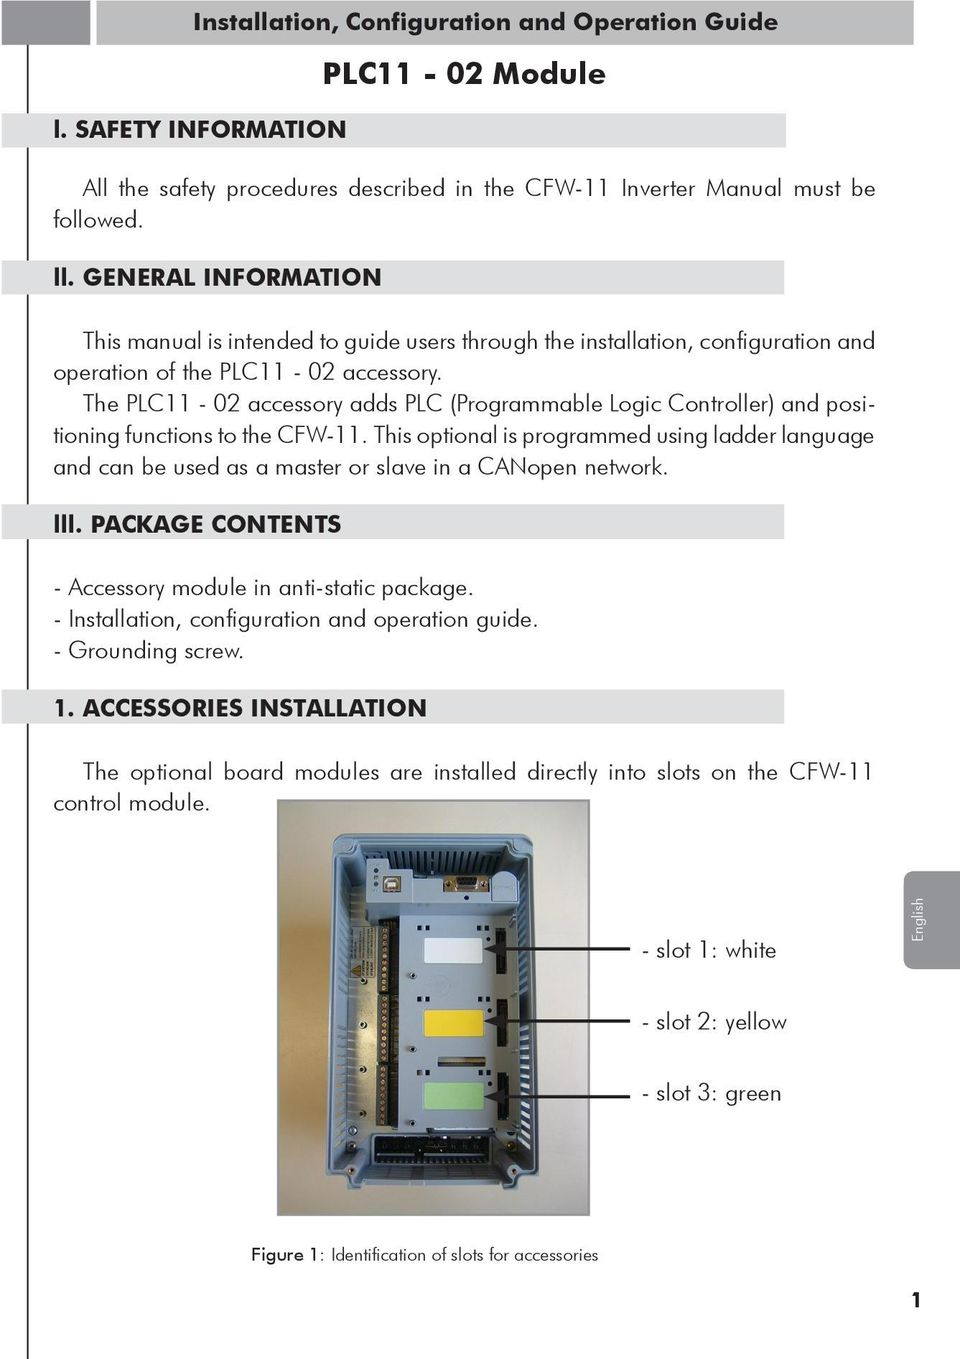 The PLC11-02 accessory adds PLC (Programmable Logic Controller) and positioning functions to the CFW-11.